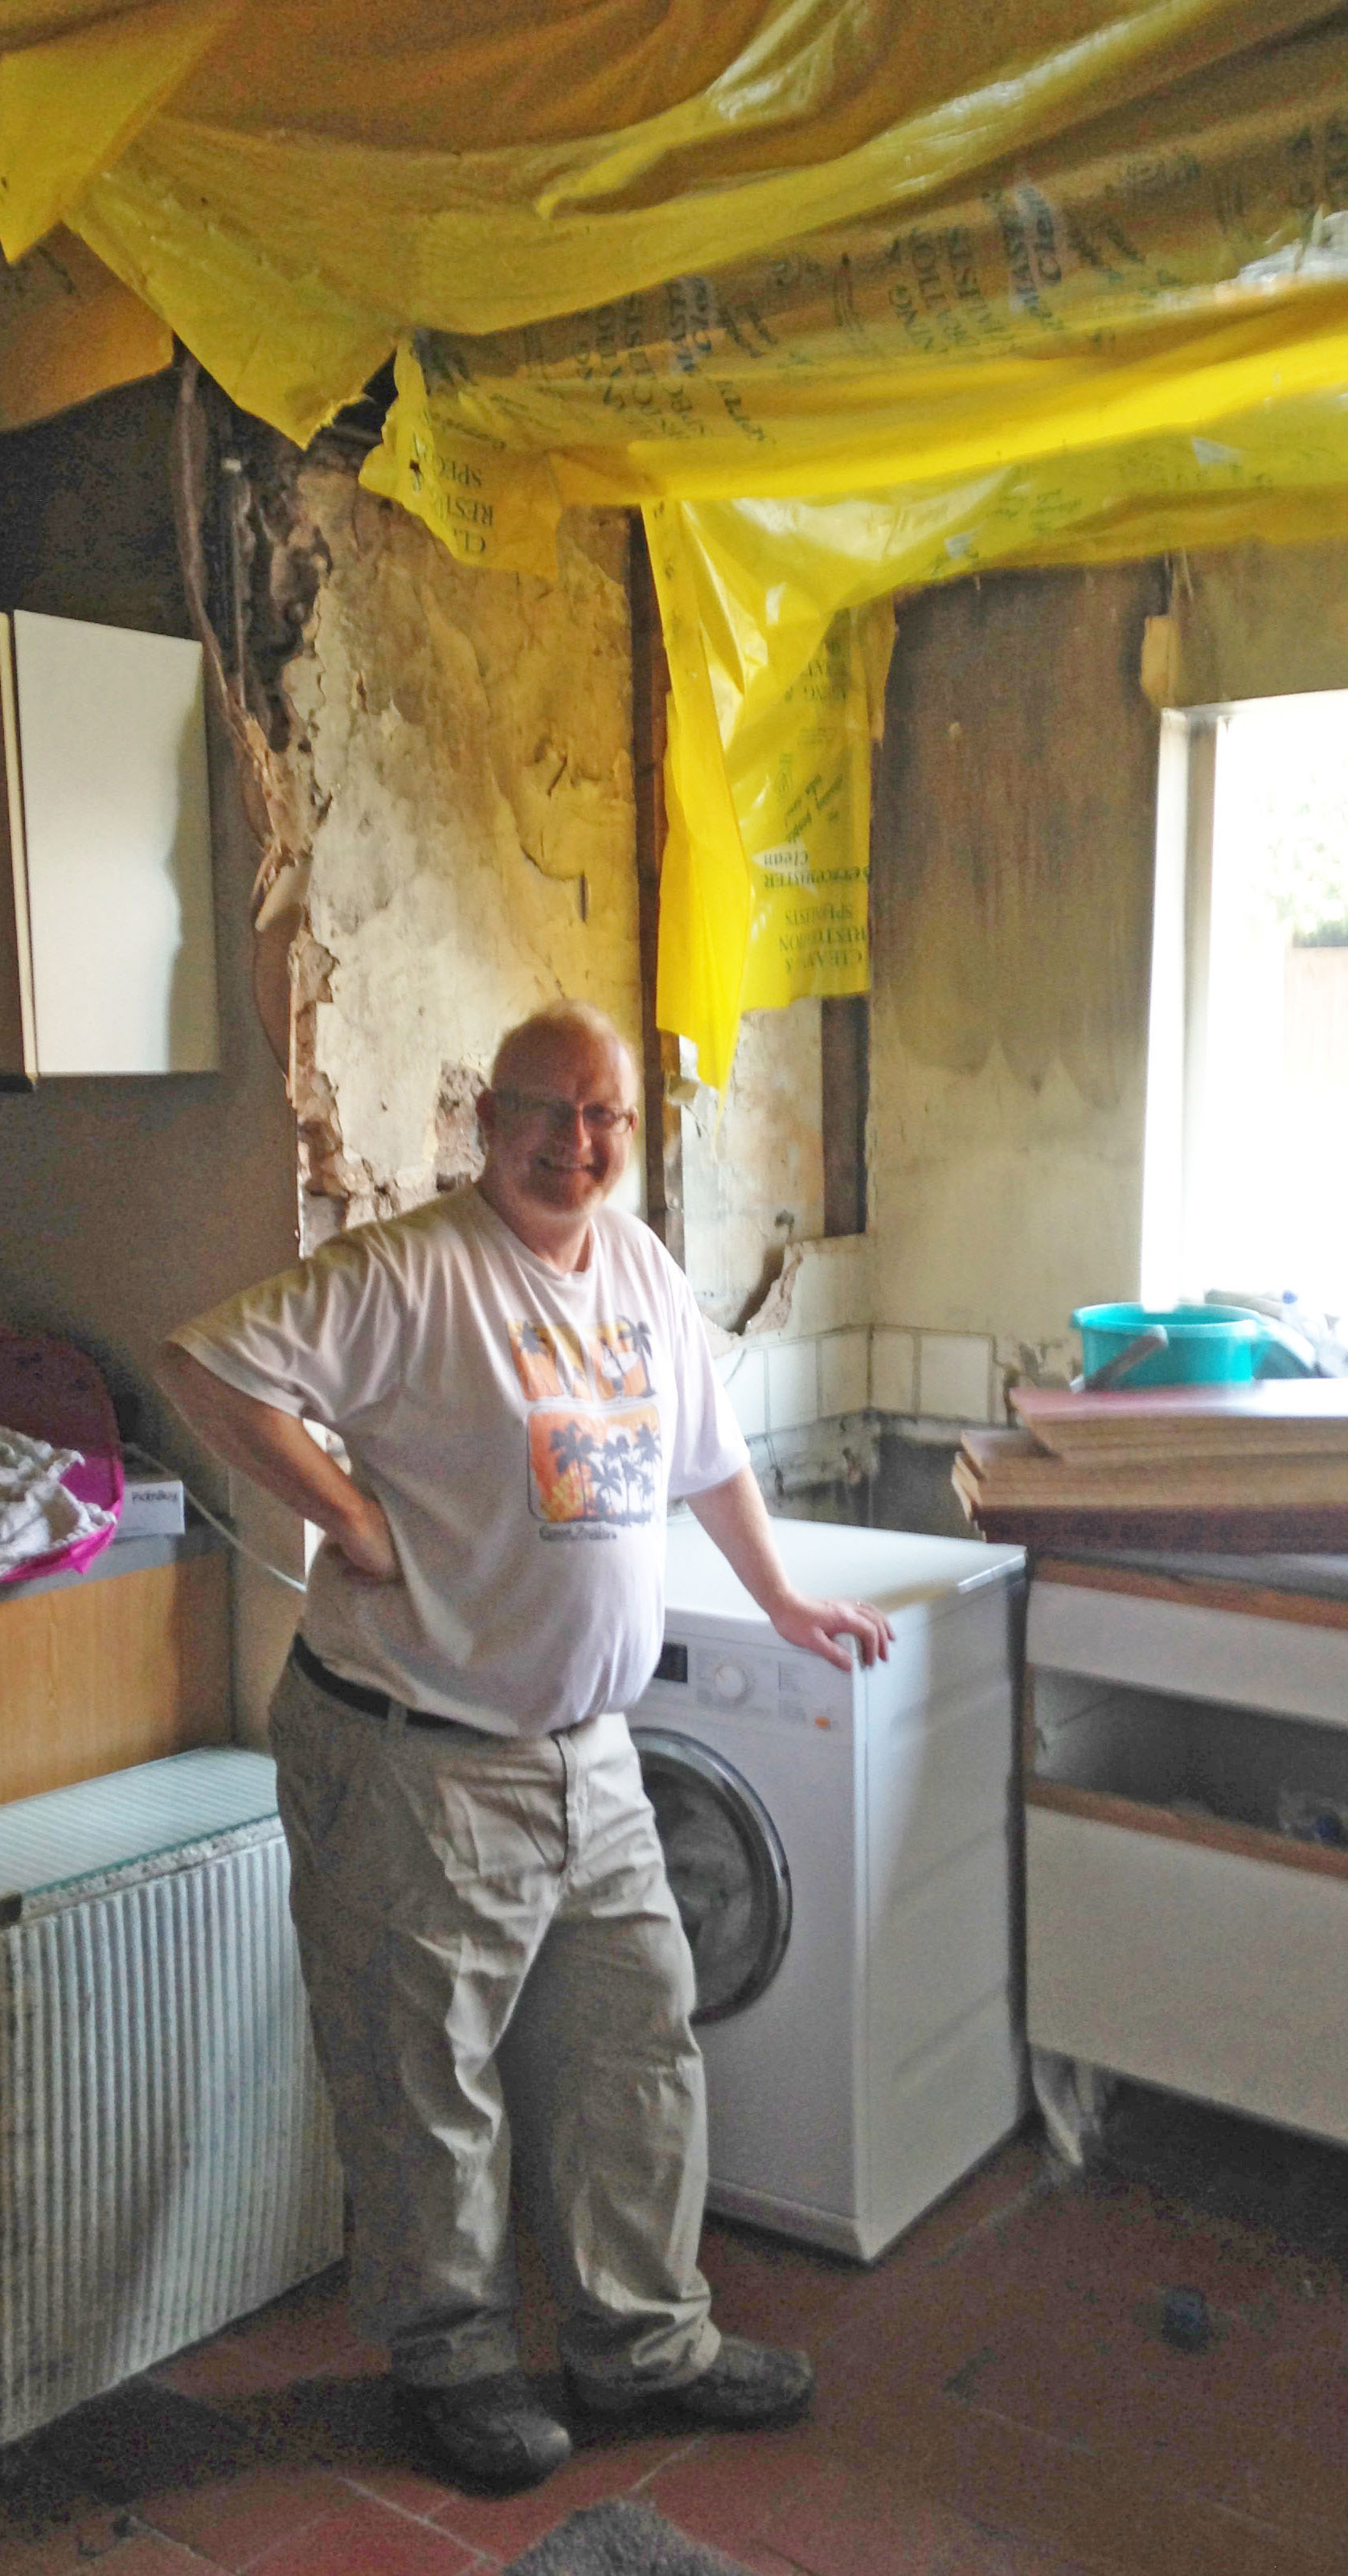 A washing machine fire caused £40,000 damage to Geoff Williams's historic 18th century Shropshire home